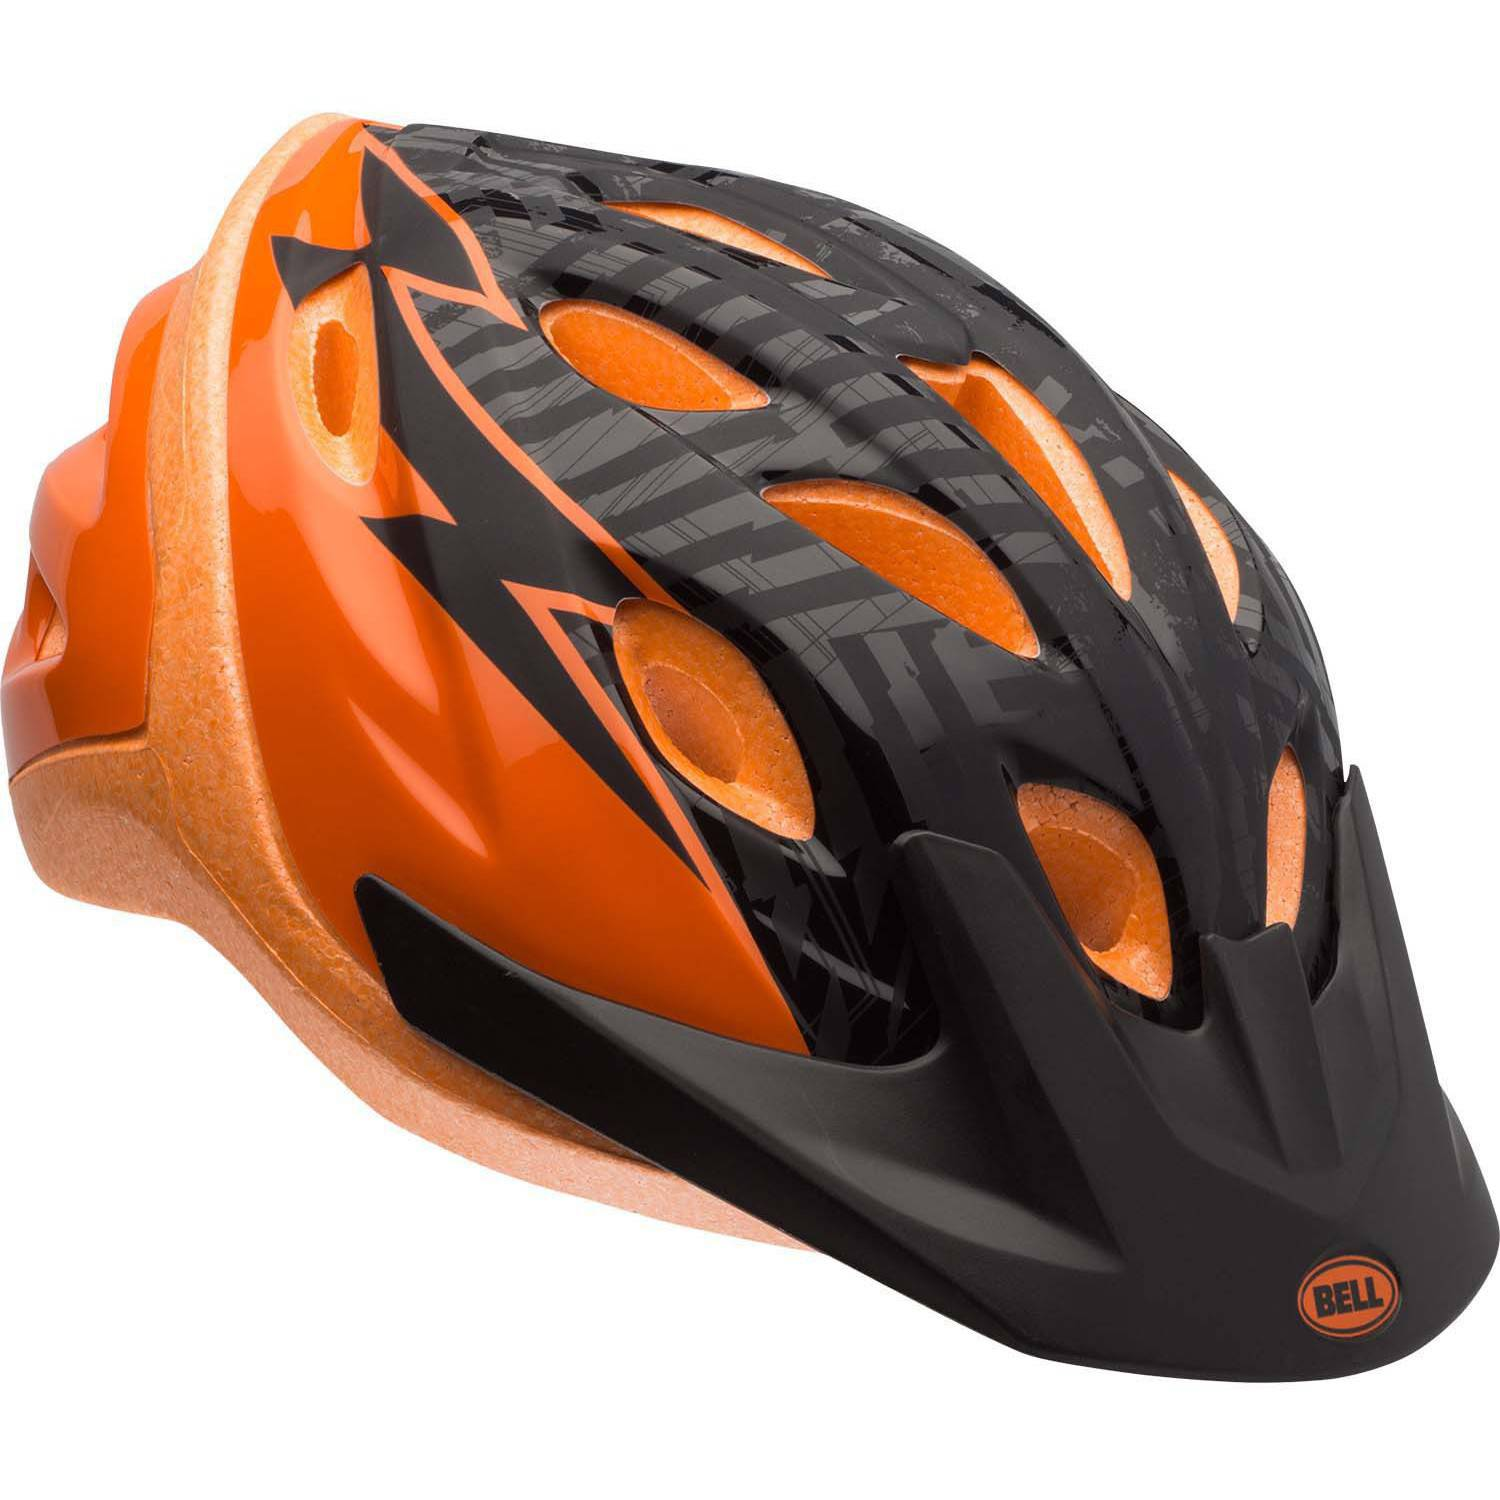 Bell Sports Dragster Mantle Child Helmet, Orange Black